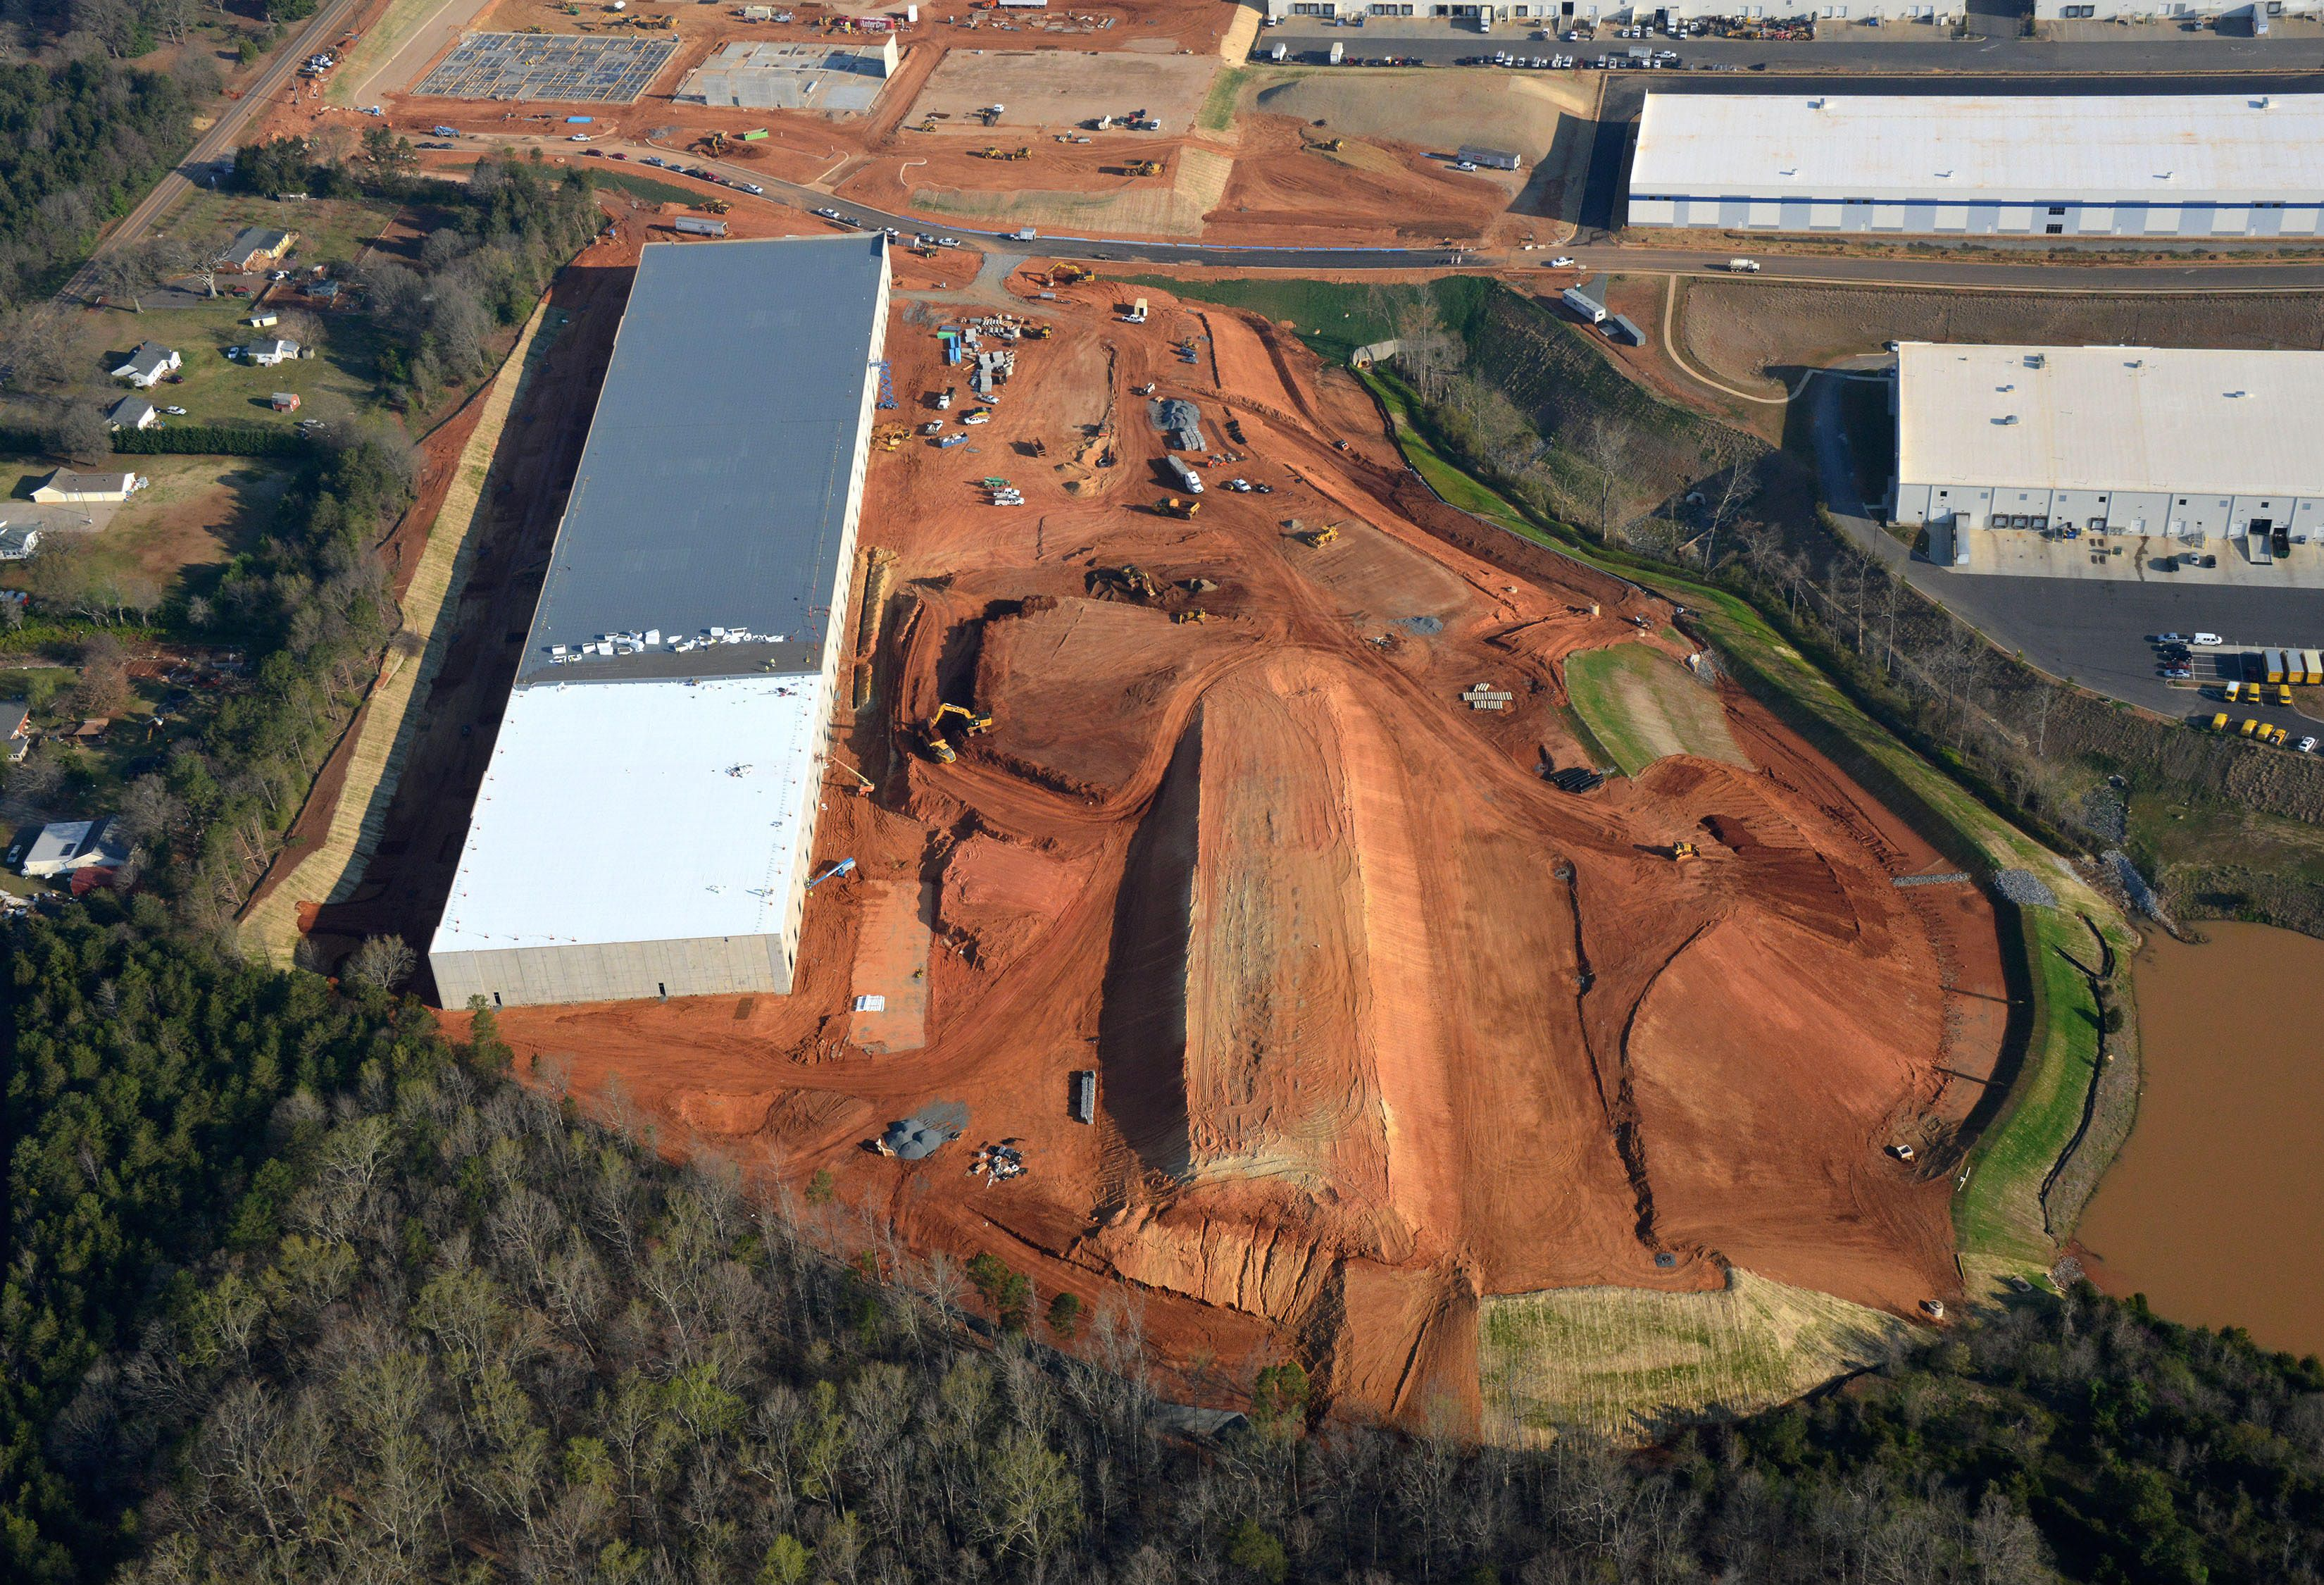 Charlotte road construction projects - Epicenter